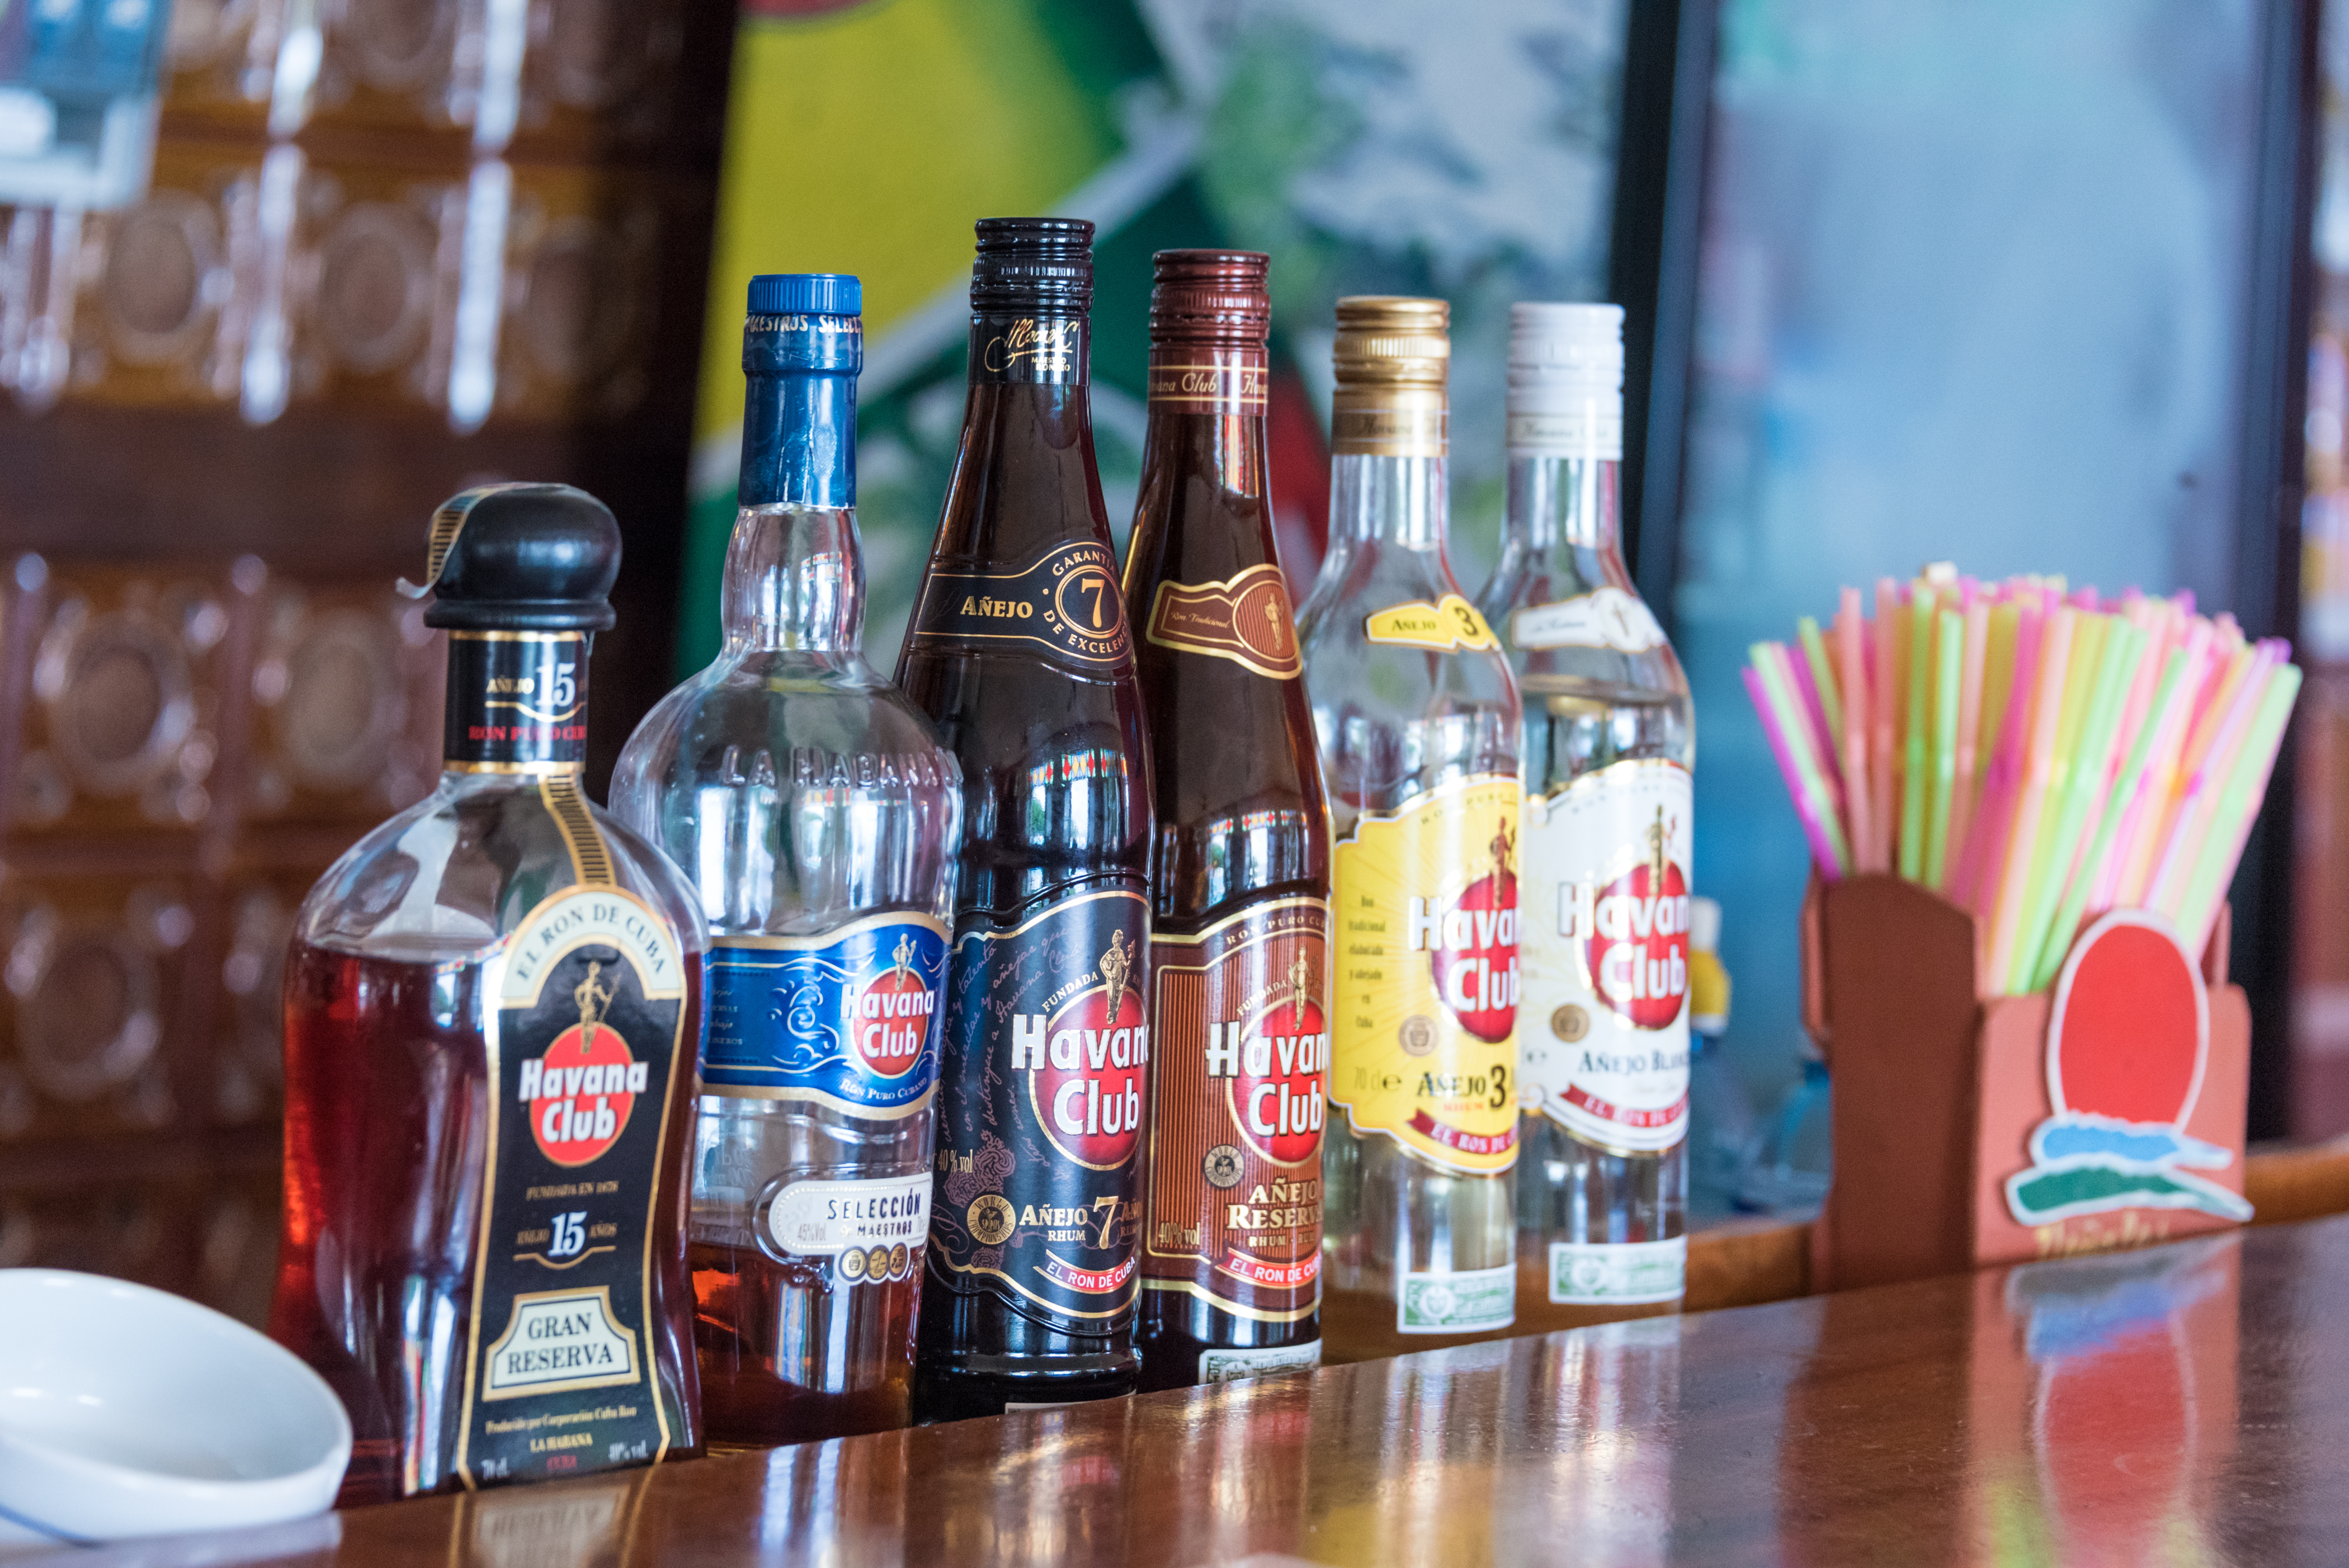 Different kinds of Havana Club rum ordered by age. The older...